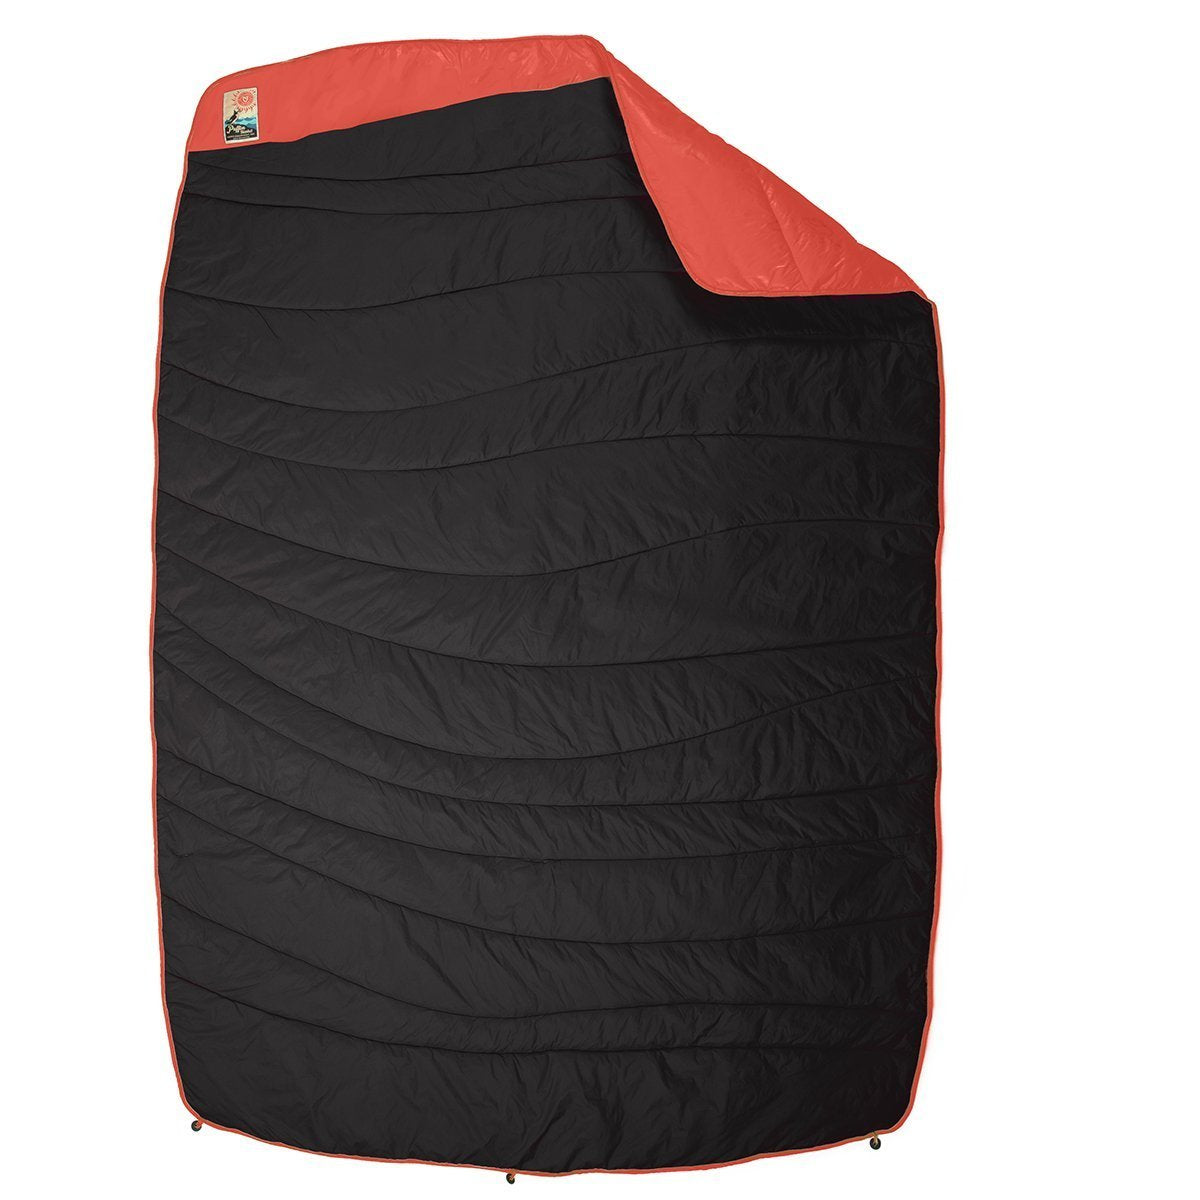 Puffin Insulated Blanket 1P